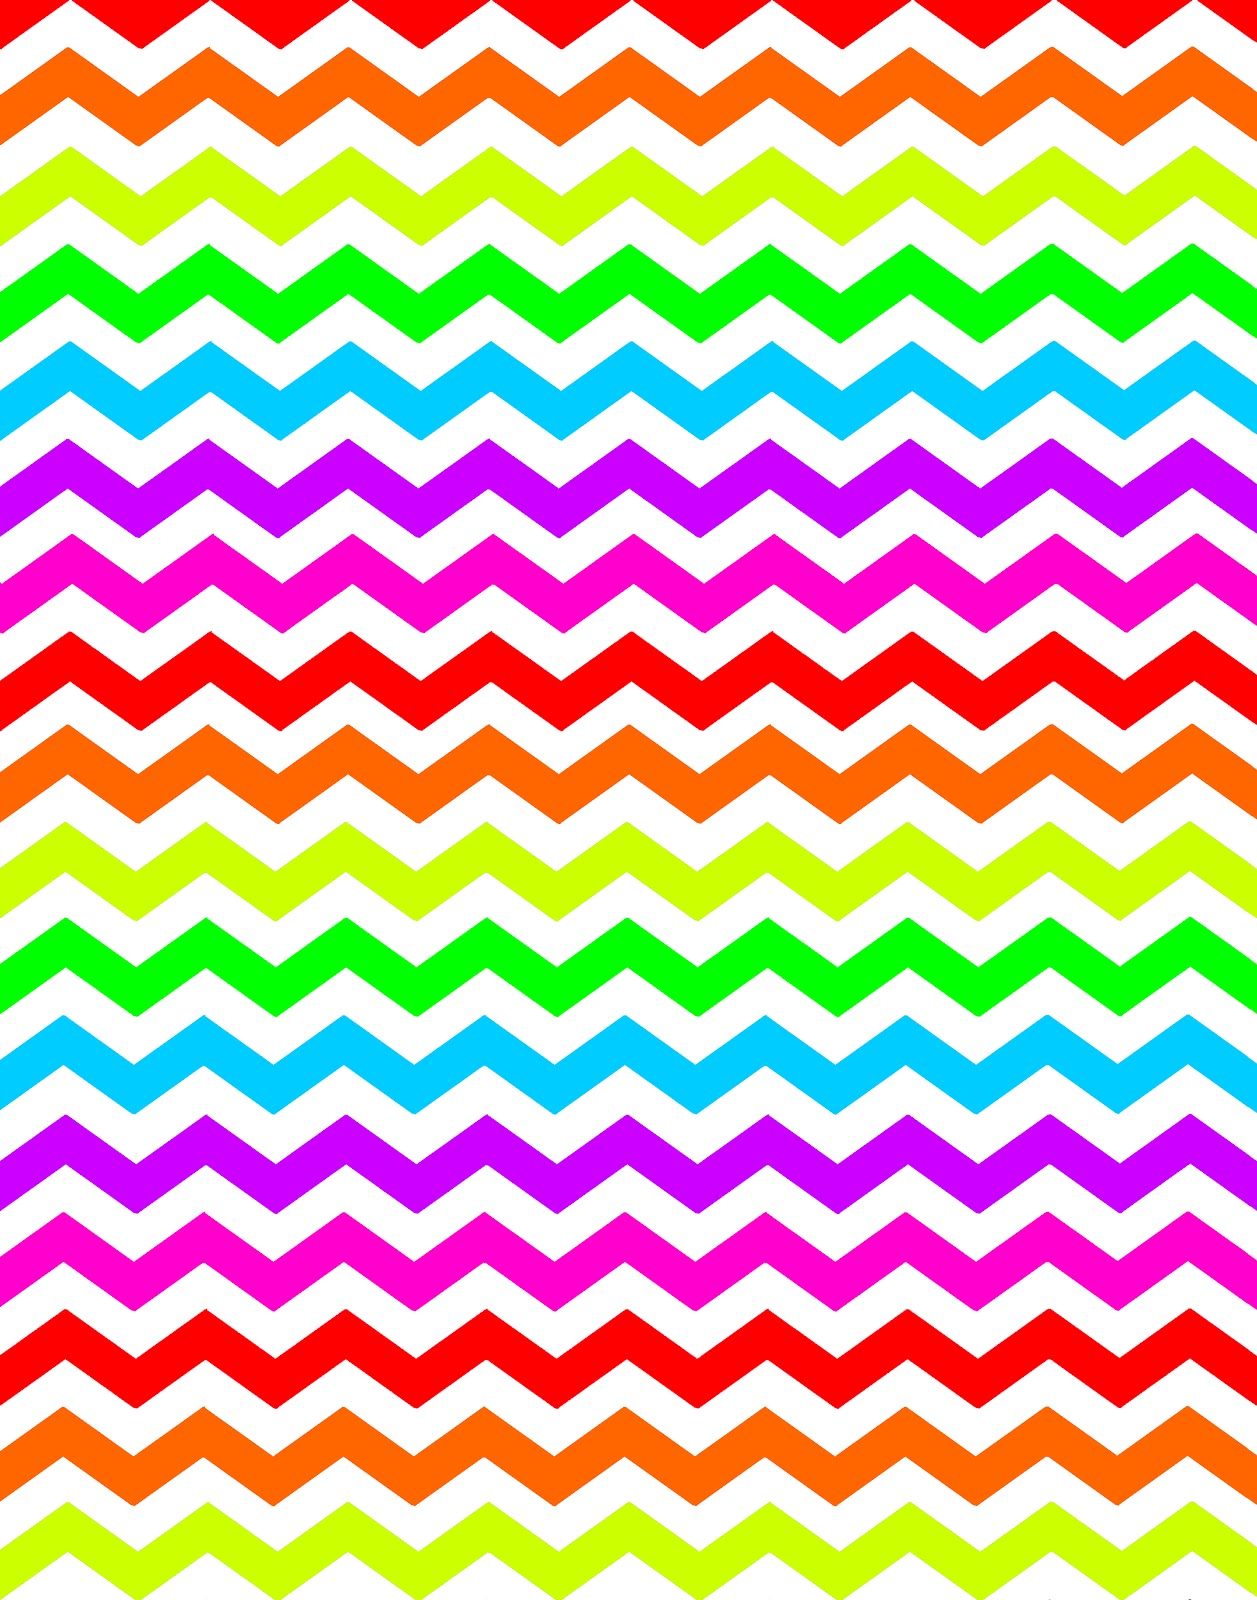 Colorful Neon Zebra Print - ClipArt Best Multi Colored Zebra Print Wallpapers